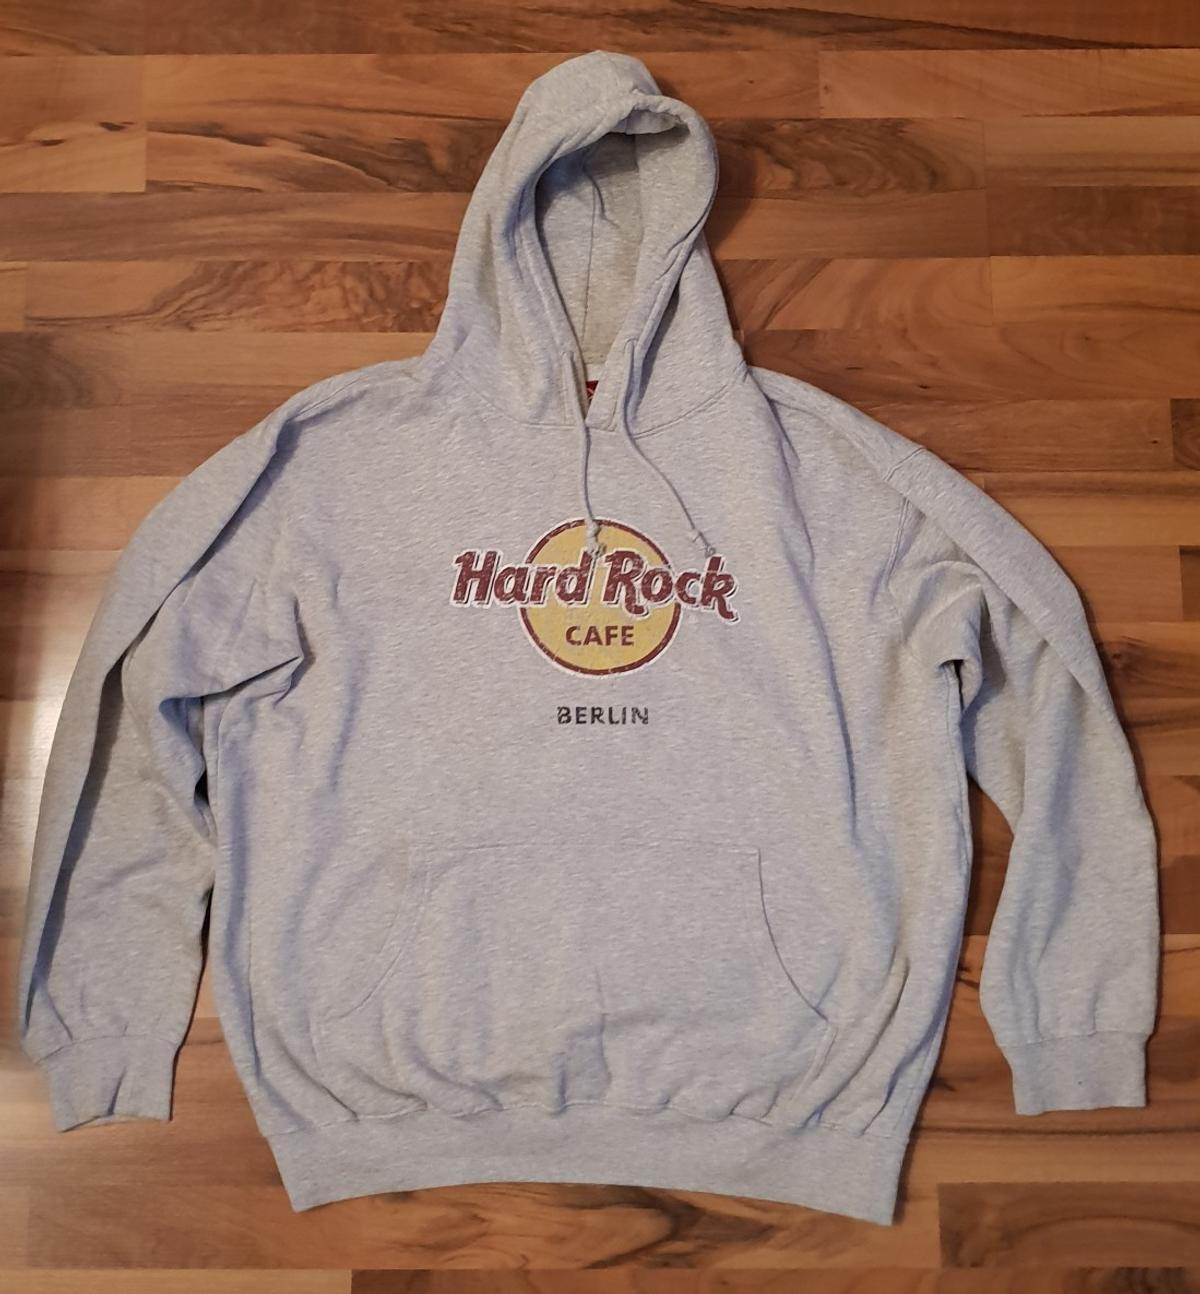 Hard Rock Cafe Pulli Berlin